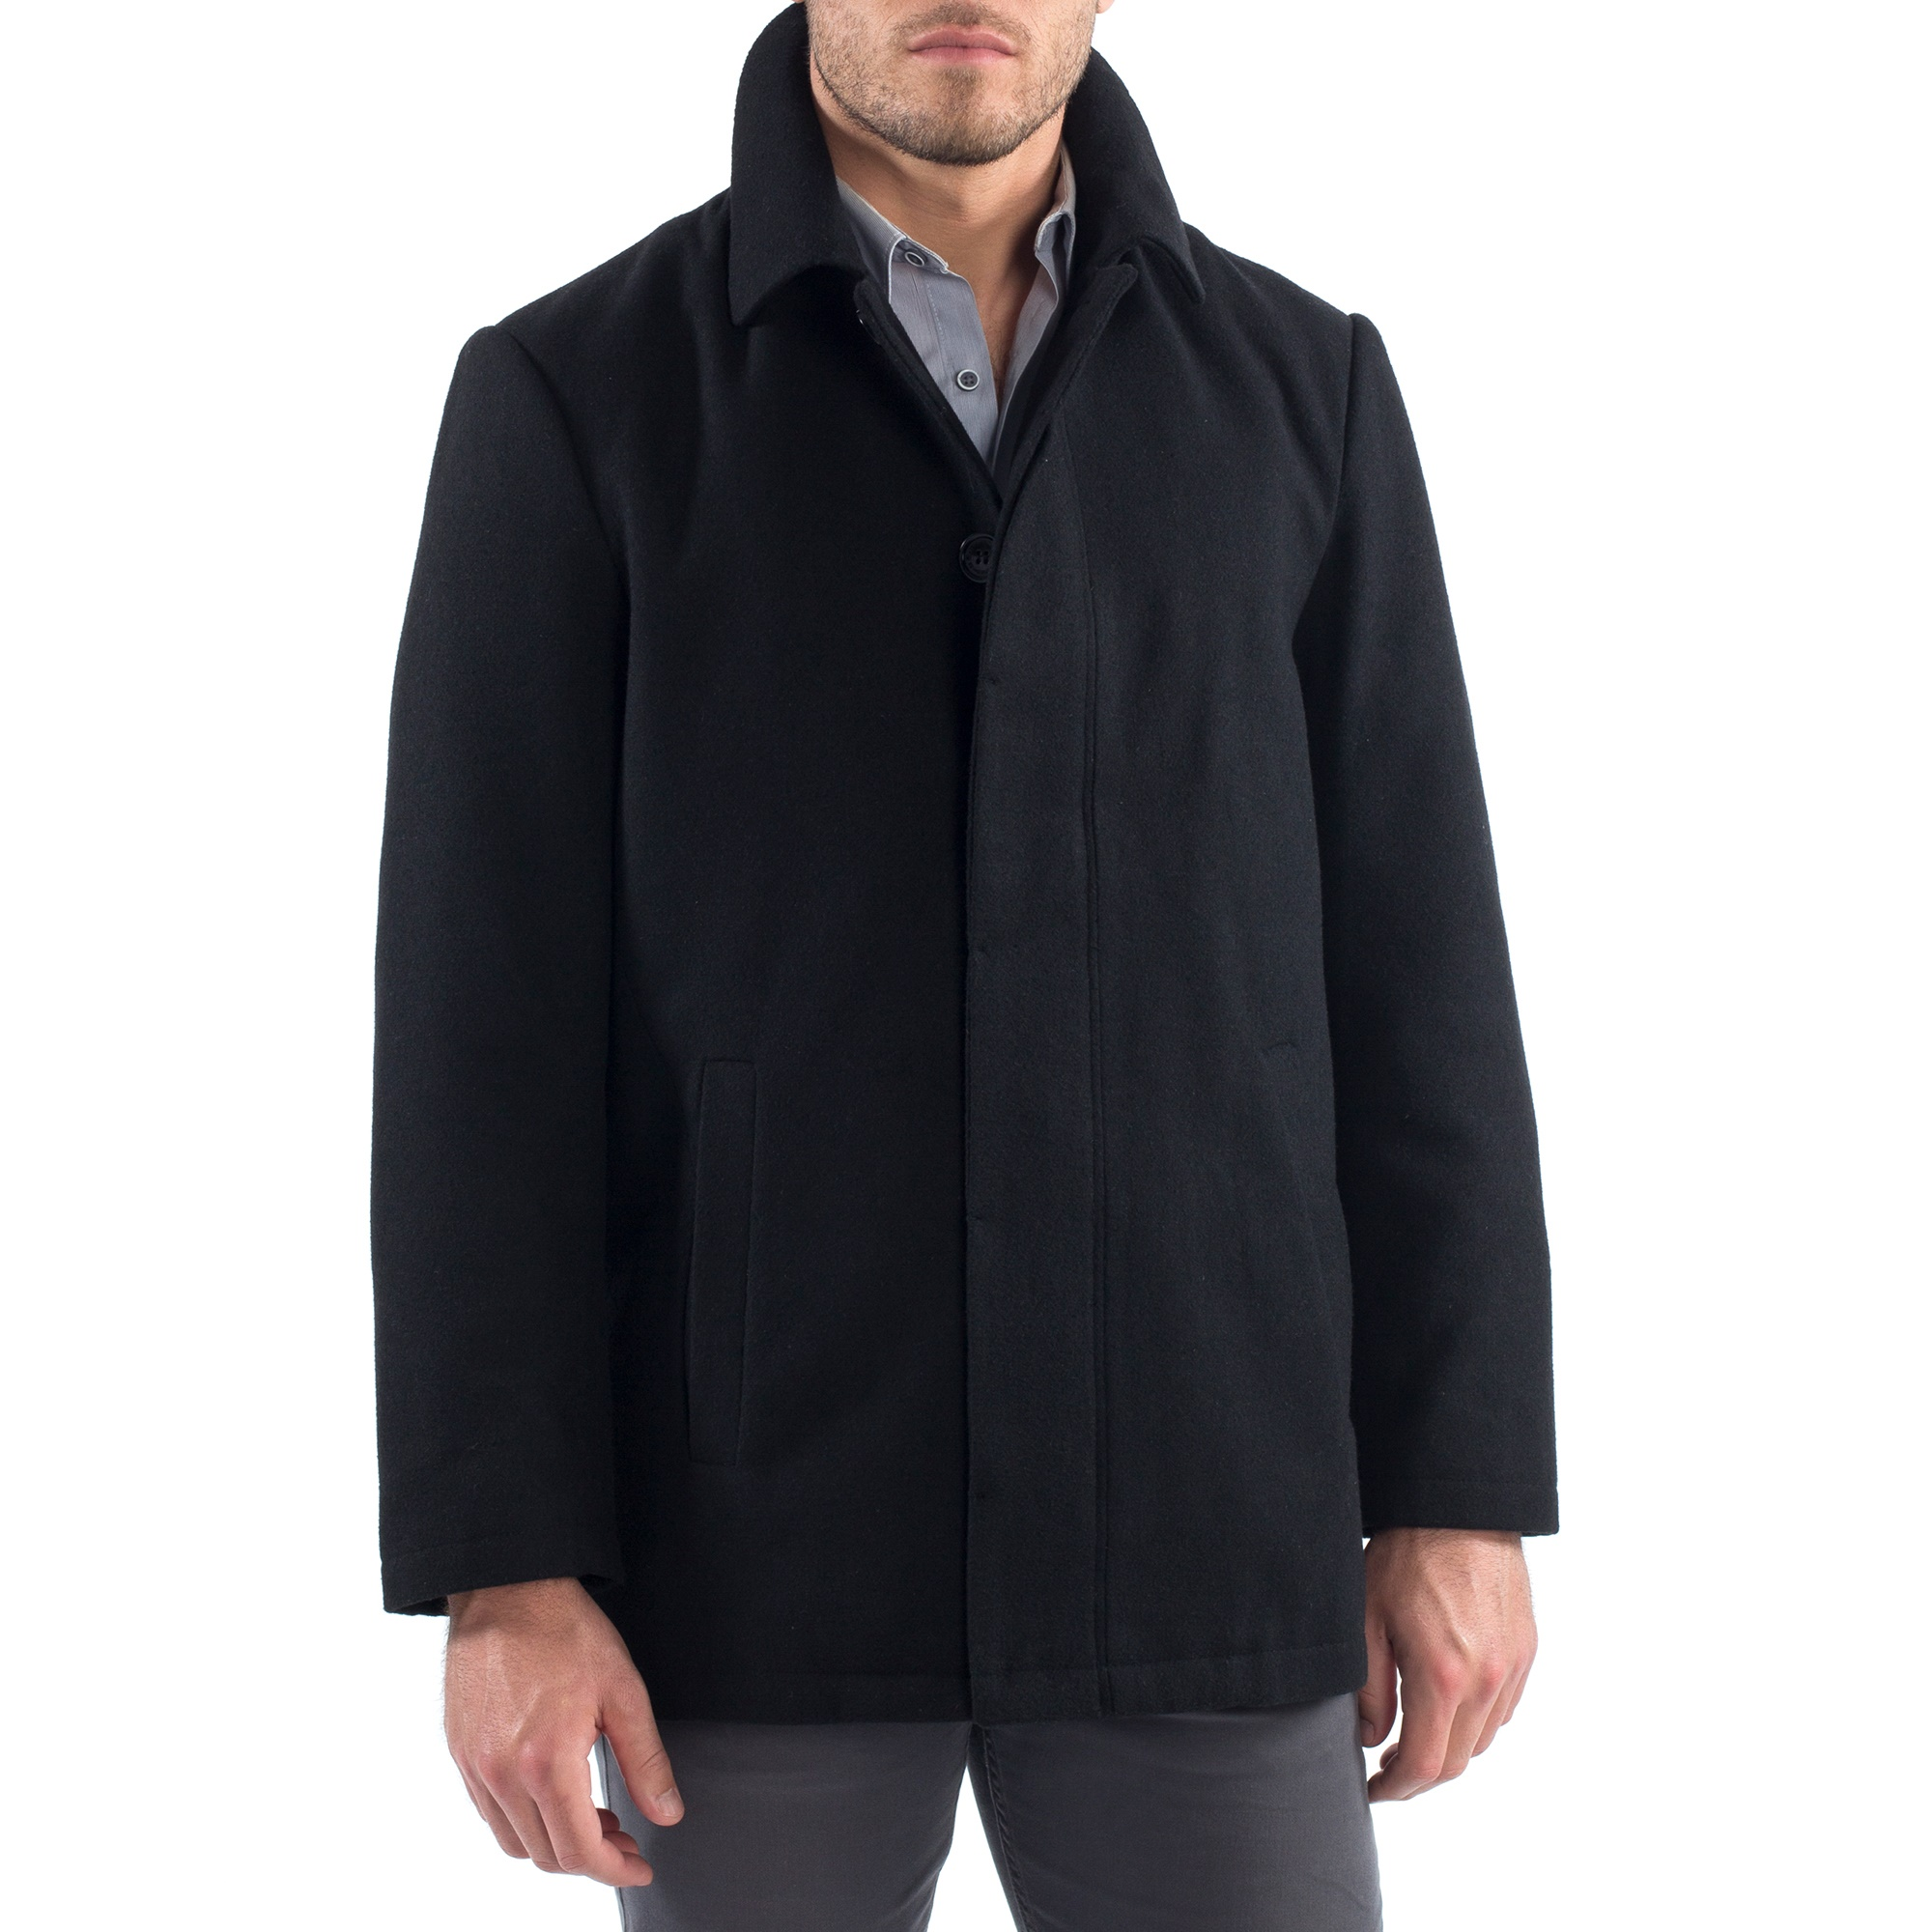 Alpine-Swiss-Vance-Mens-Jacket-Wool-Blend-Button-Up-Coat-Dress-Car-Coat-Blazer thumbnail 16